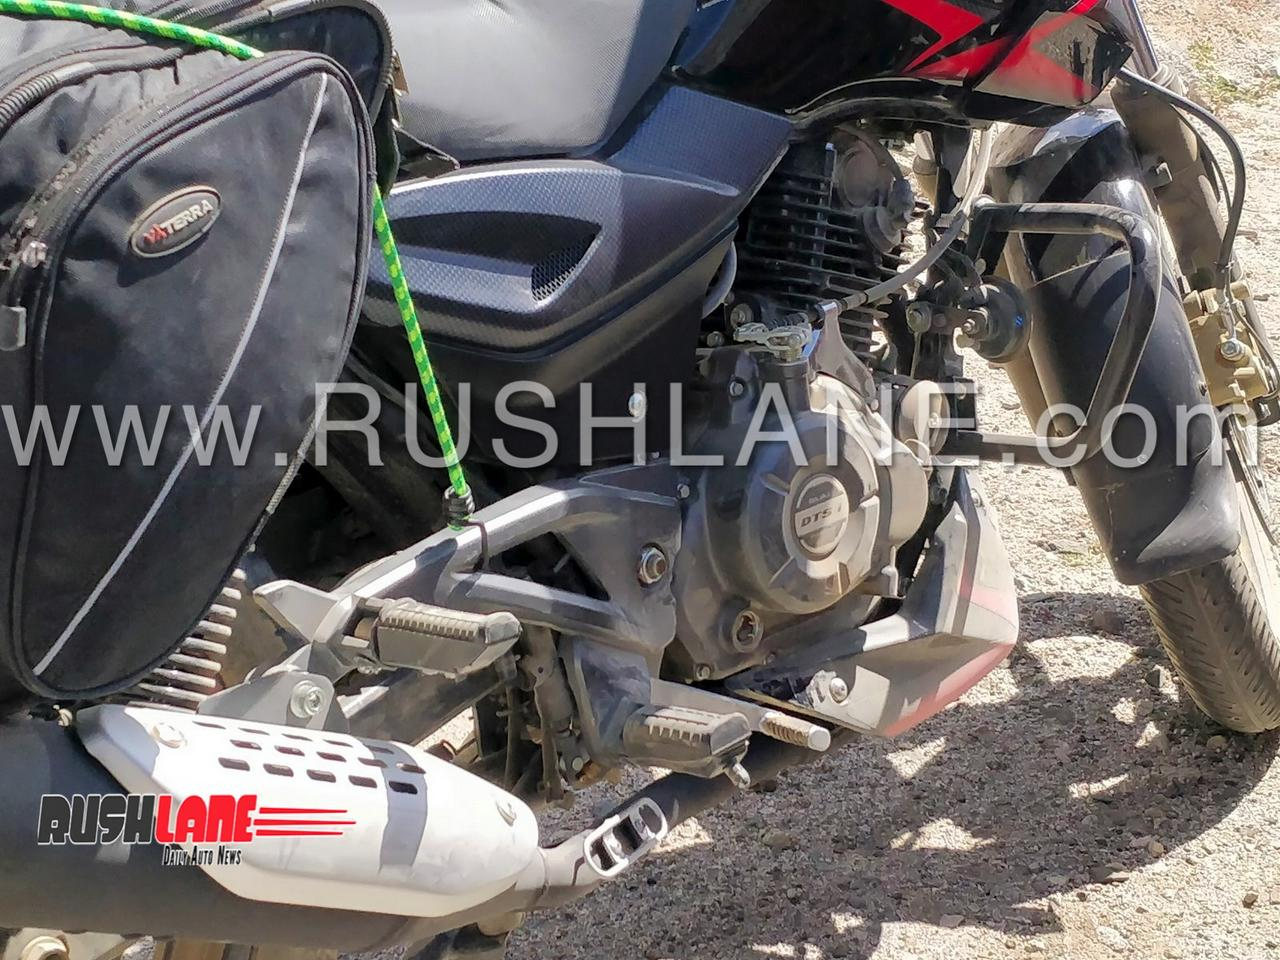 New Bajaj Pulsar 150 ABS spied for the first time - Launch expected